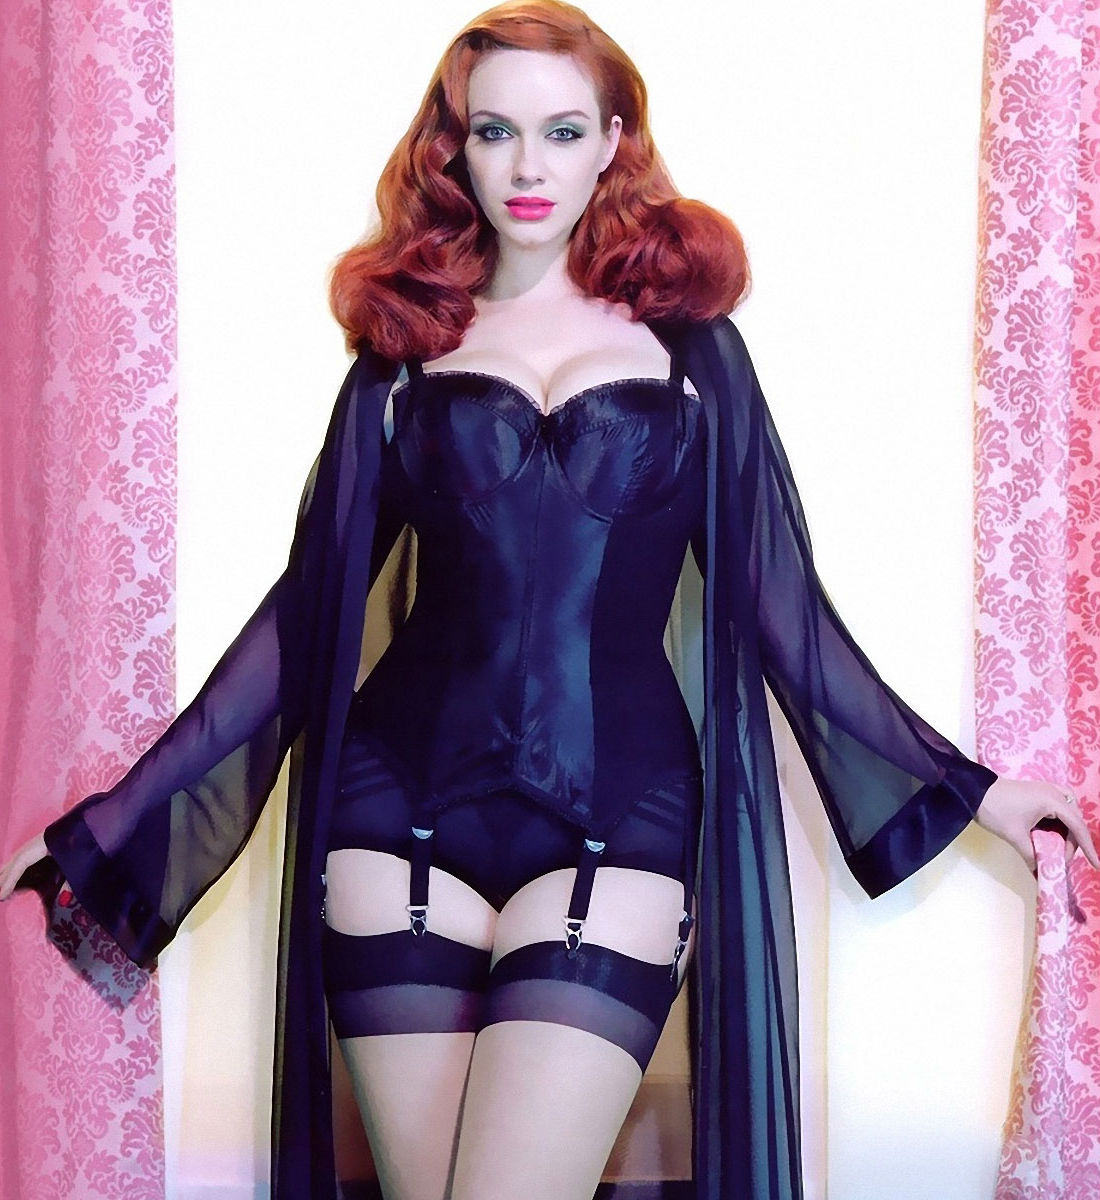 christina-hendricks-hot-lingerie